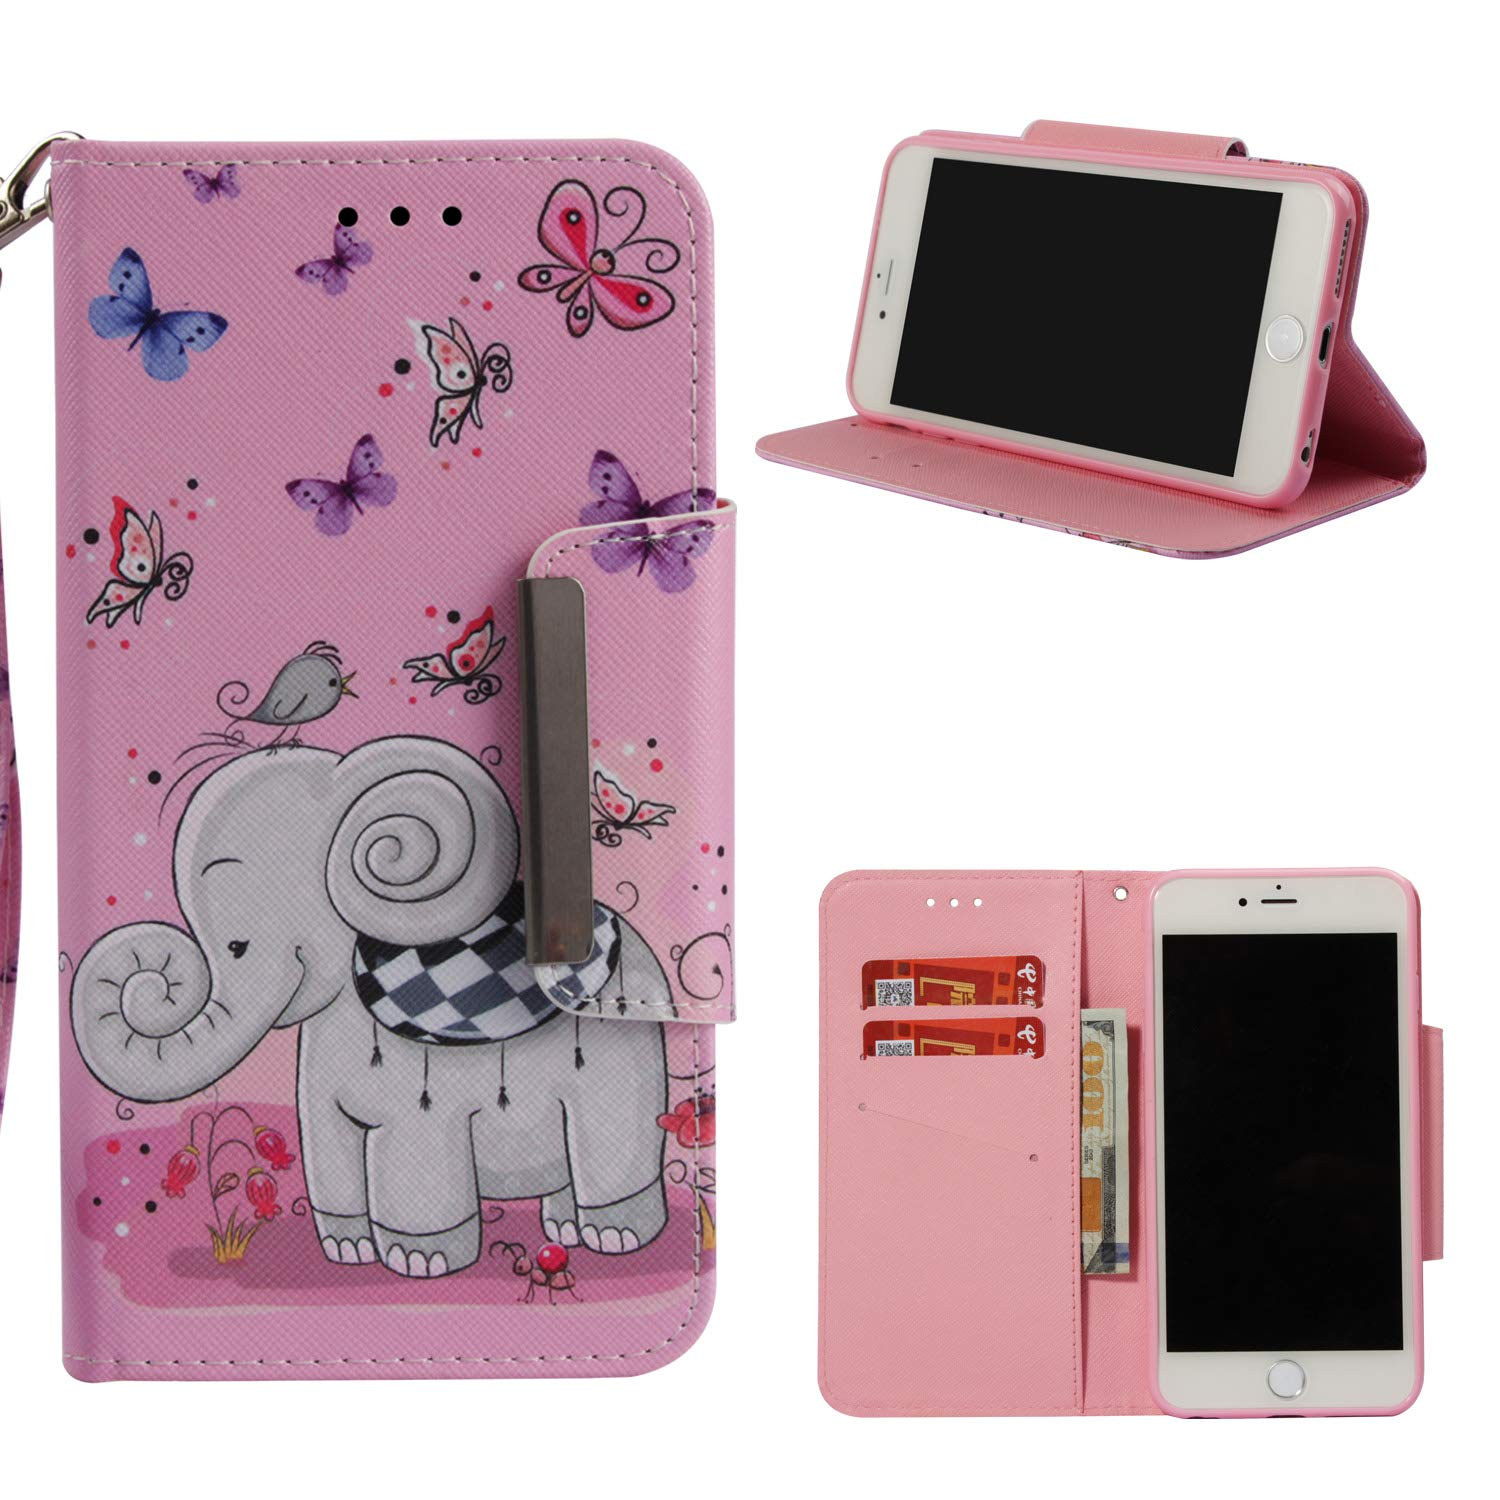 Leather Wallet Case for iPhone 6S/iPhone 6,Shinyzone Cute Cartoon Butterfly and Elephant Painted Pattern Flip Stand Case,Wristlet & Metal Magnetic Closure Protective Cover